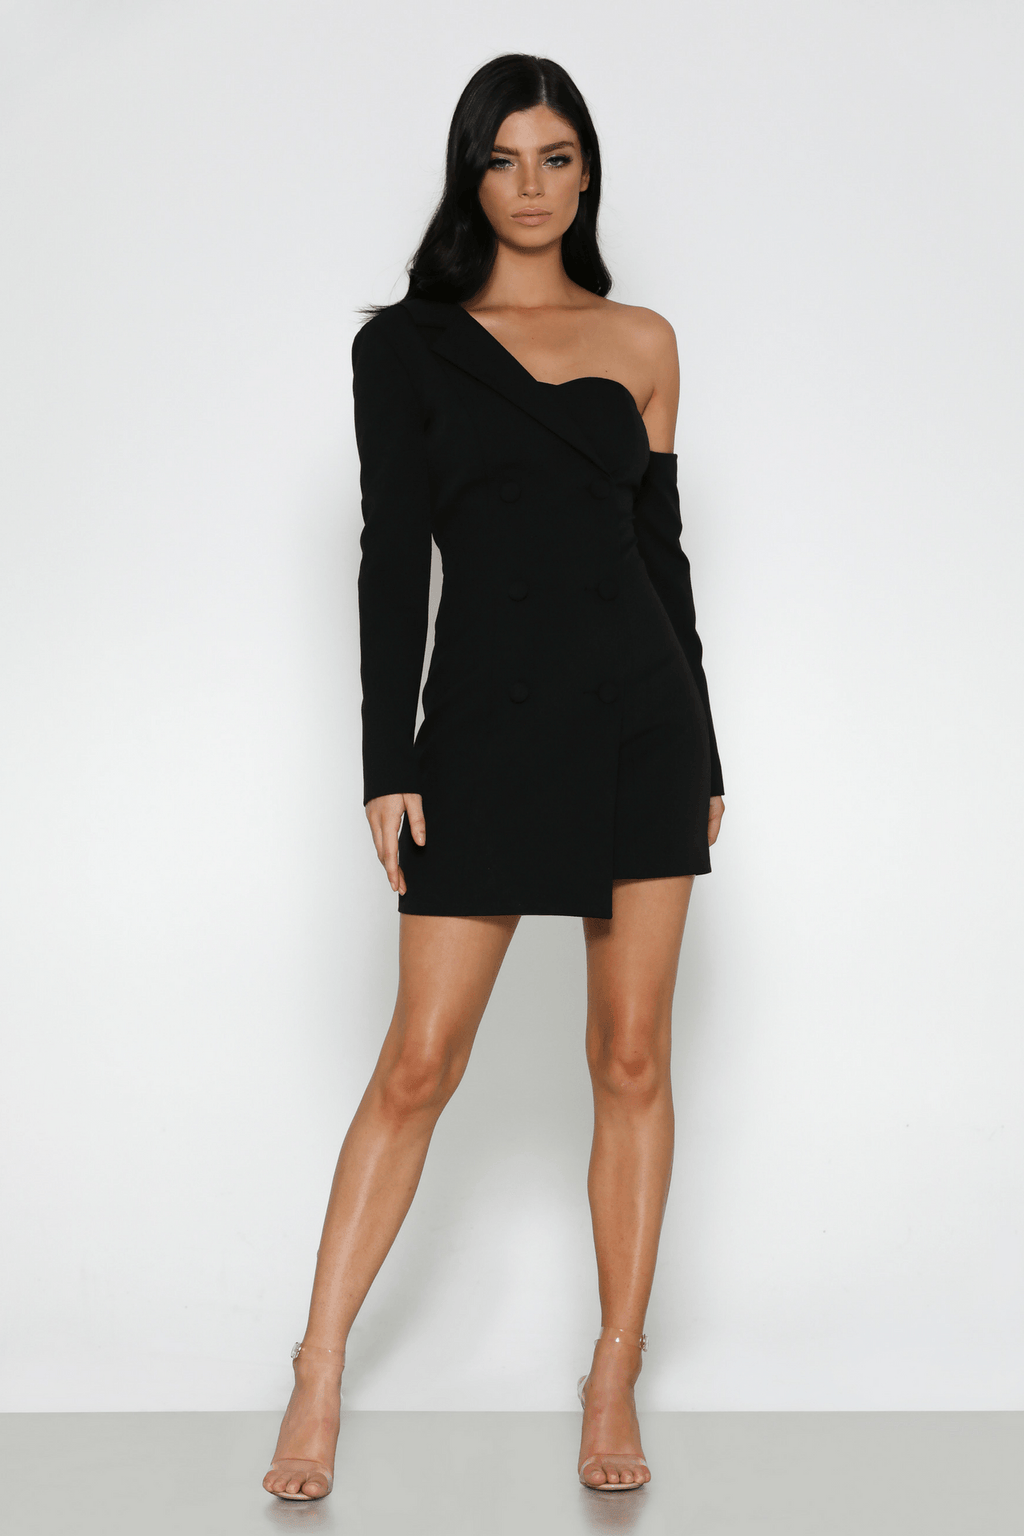 Celine Blazer Dress In Black